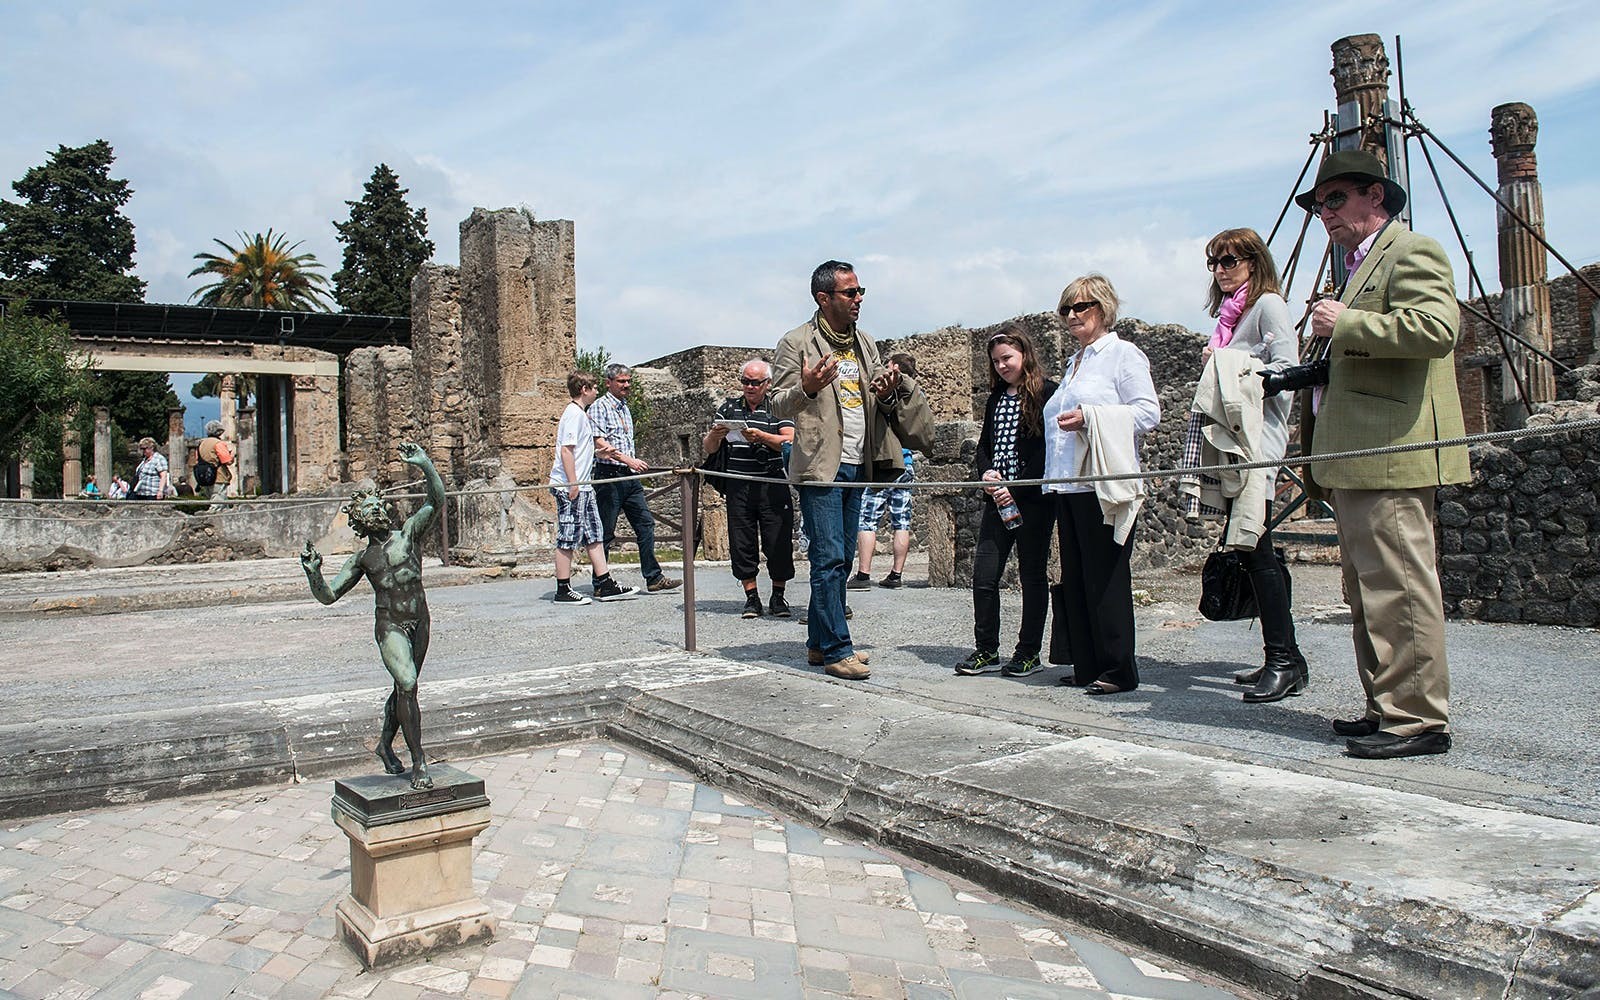 pompeii excavations and naples full day tour -1